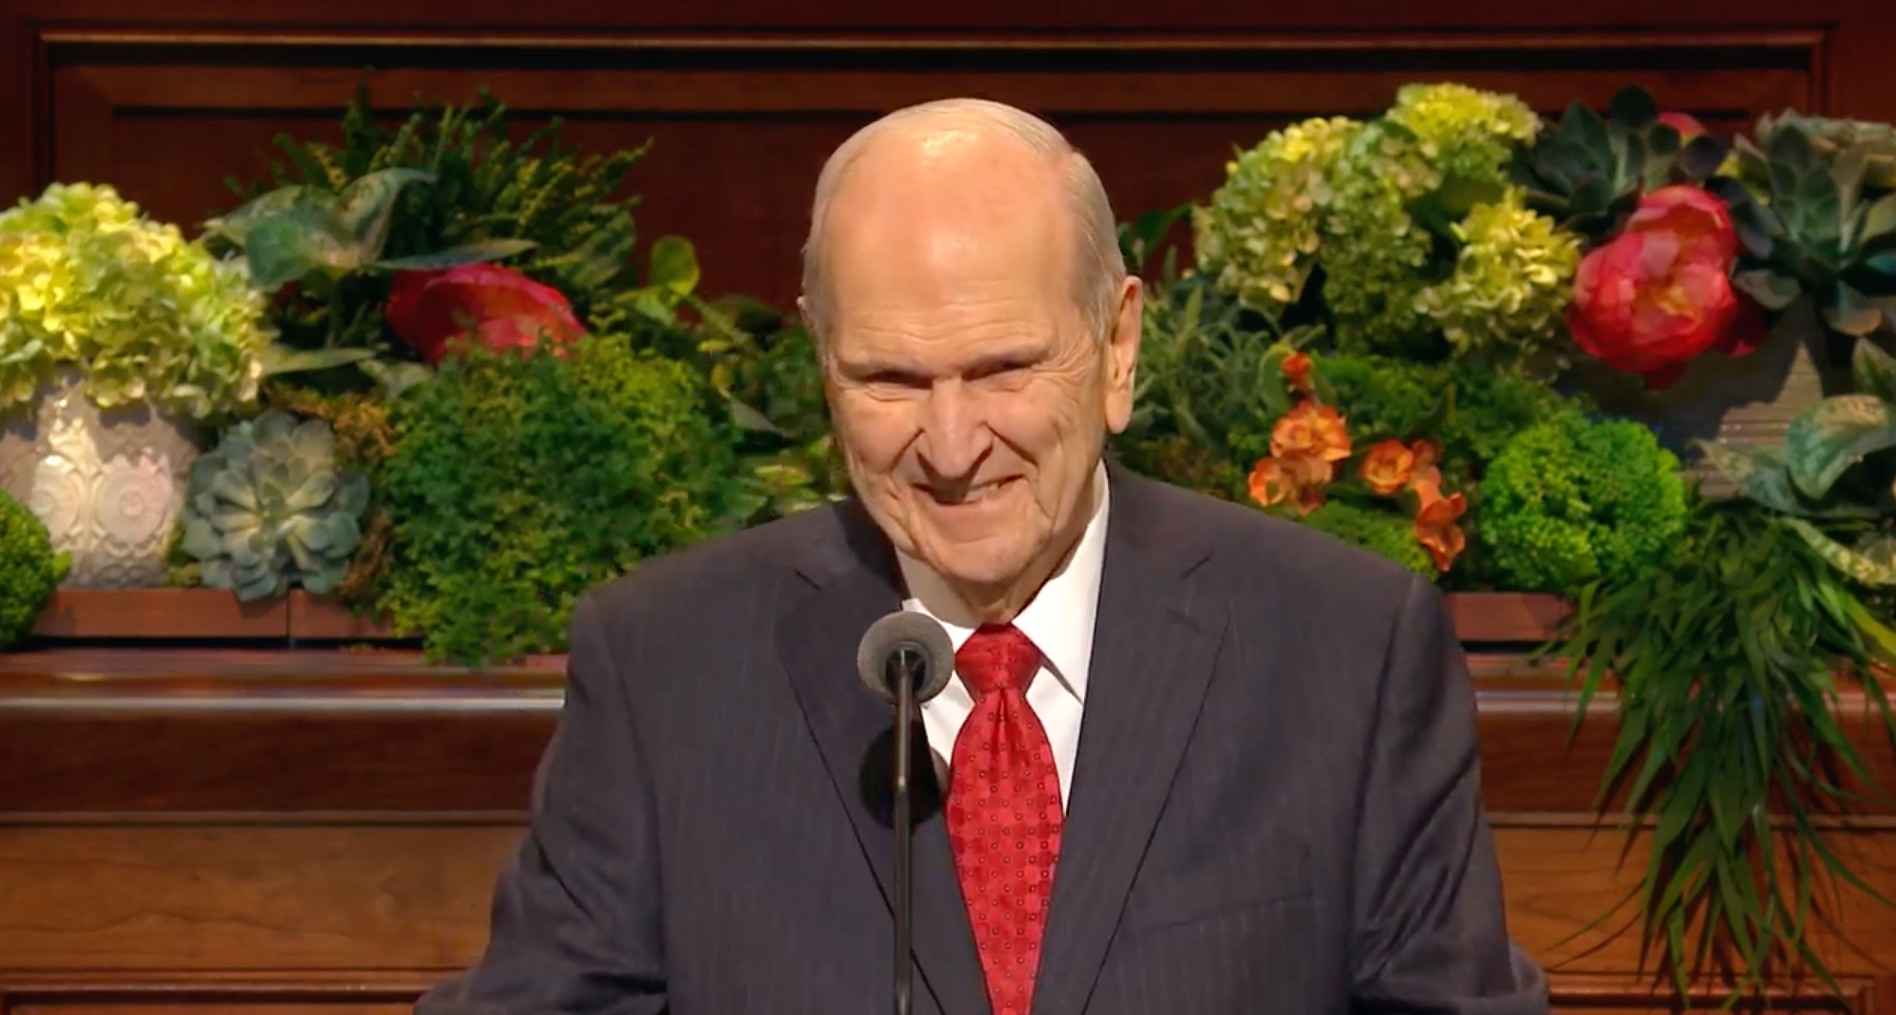 photograph regarding President Nelson Challenge Printable known as President Russell M. Nelson: We Can Do Greater and Be Much better